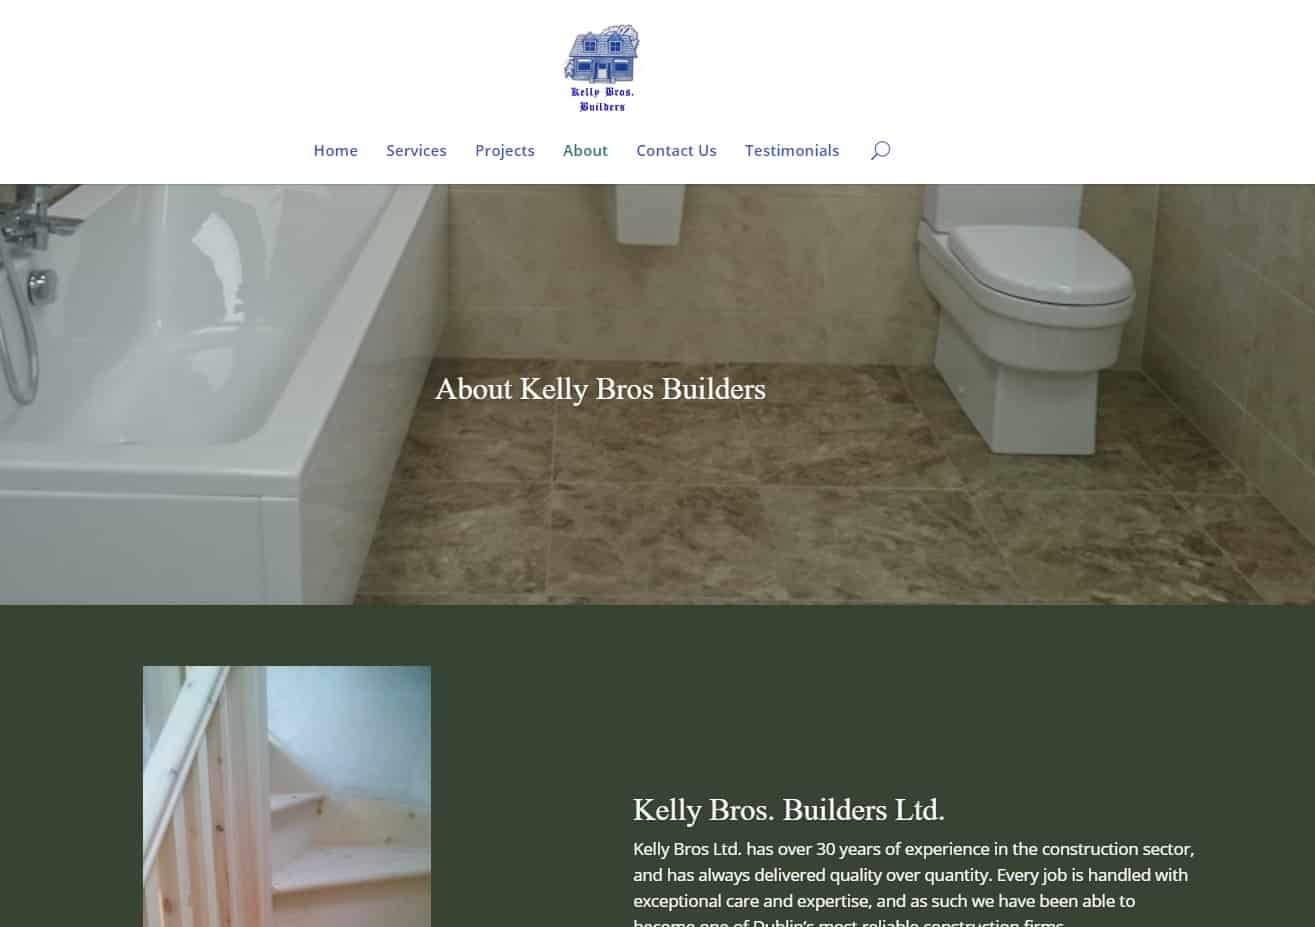 Web Design for Builders Screenshot: Services Page